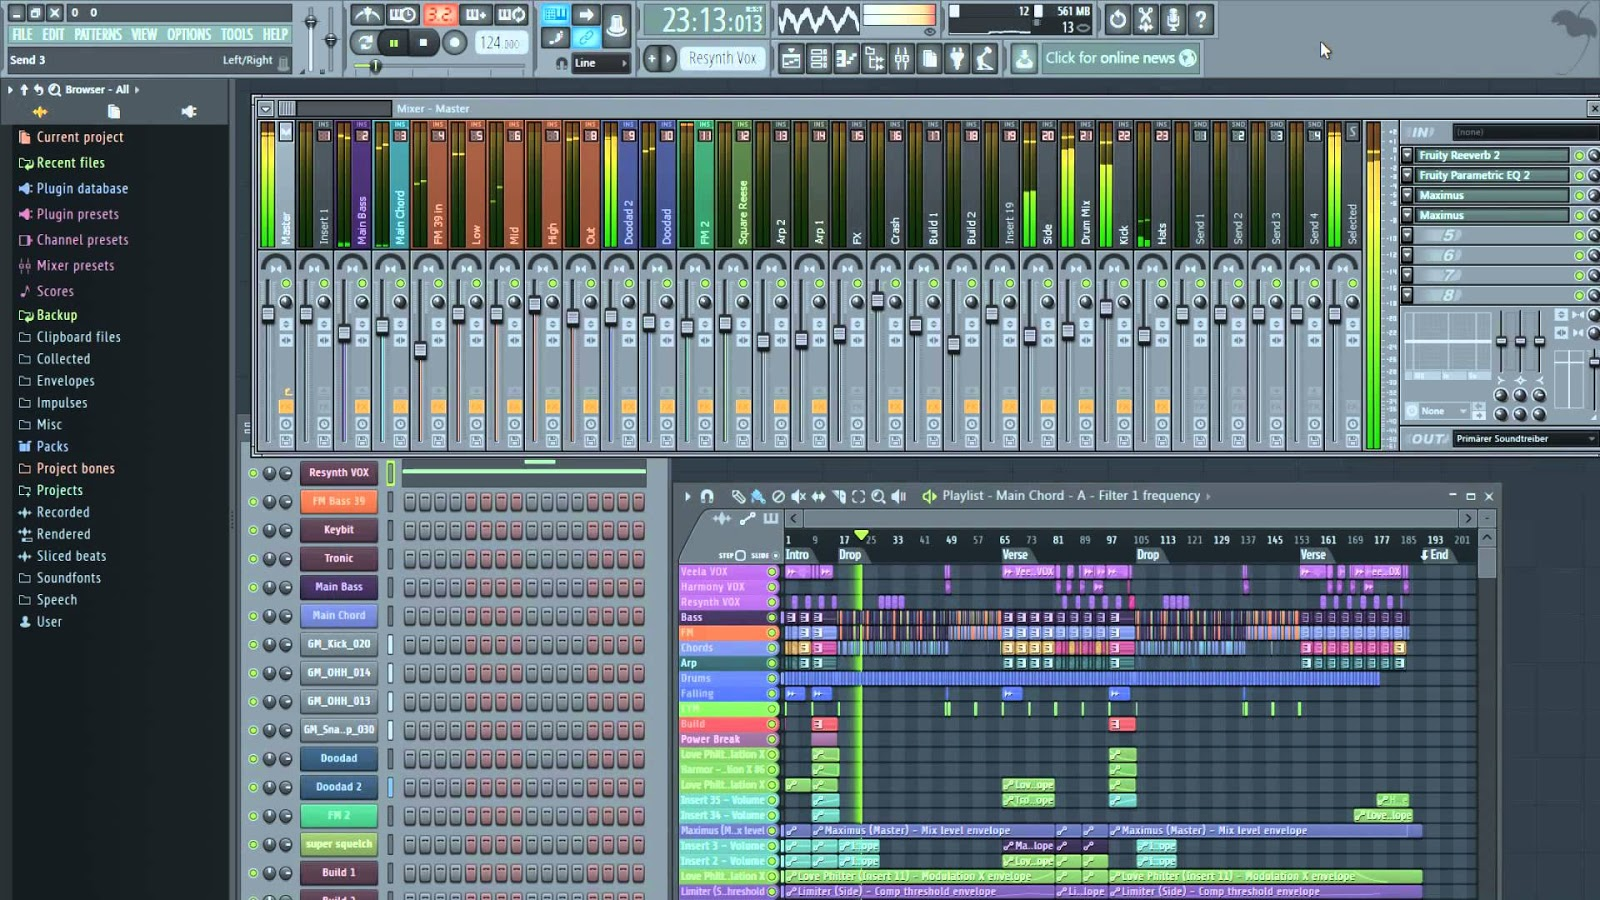 fl studio 12 all plugins bundle crack